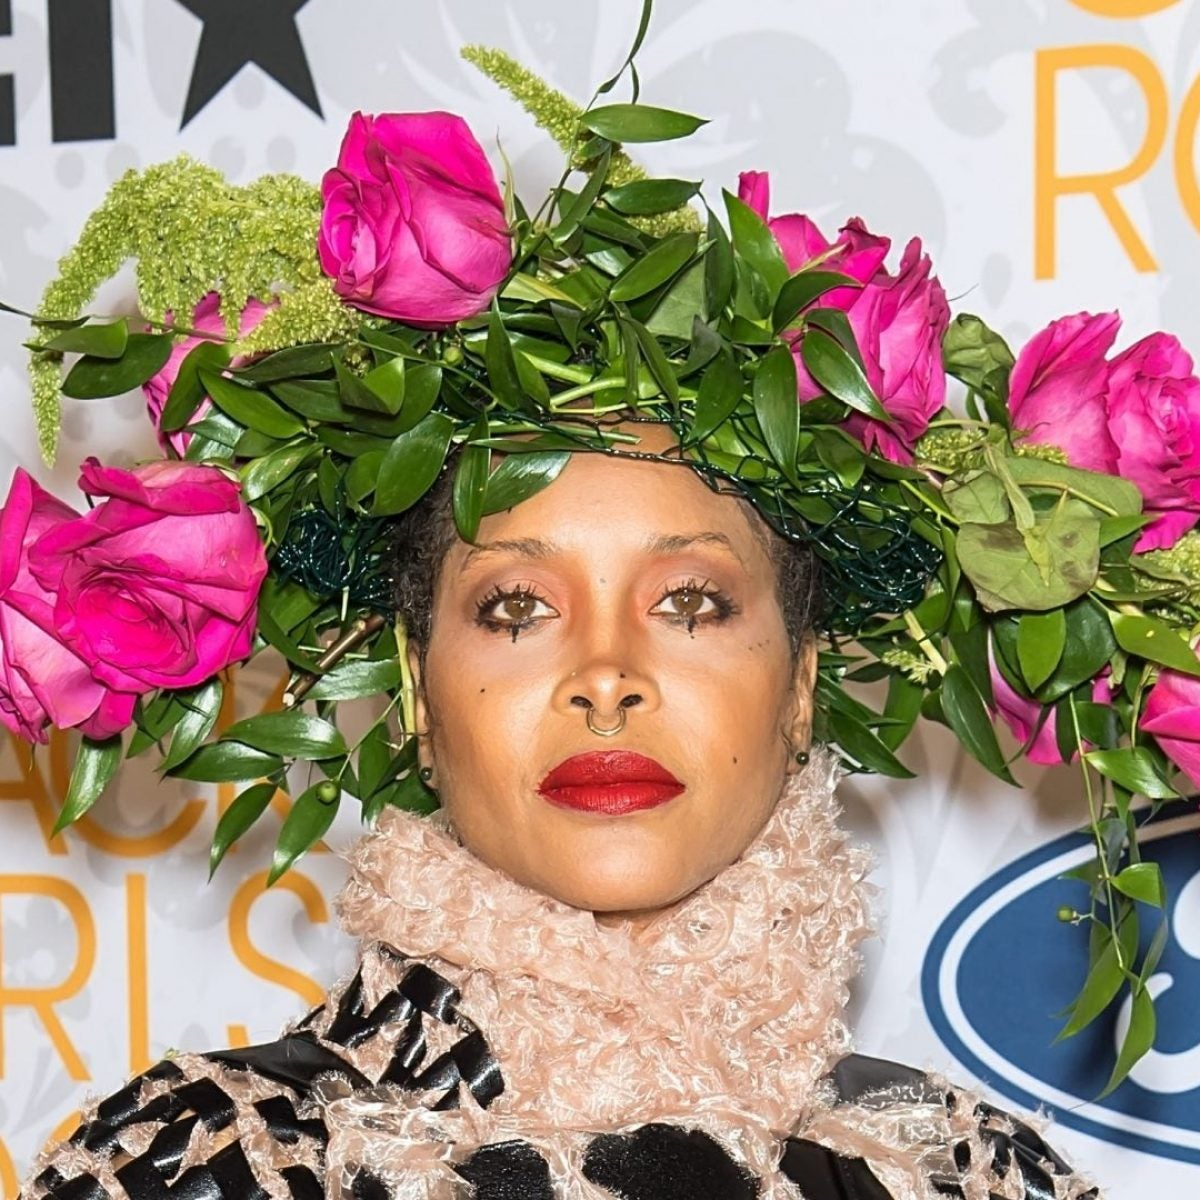 Erykah Badu Will Be The Midwife For This Pregnant Celebrity Mom